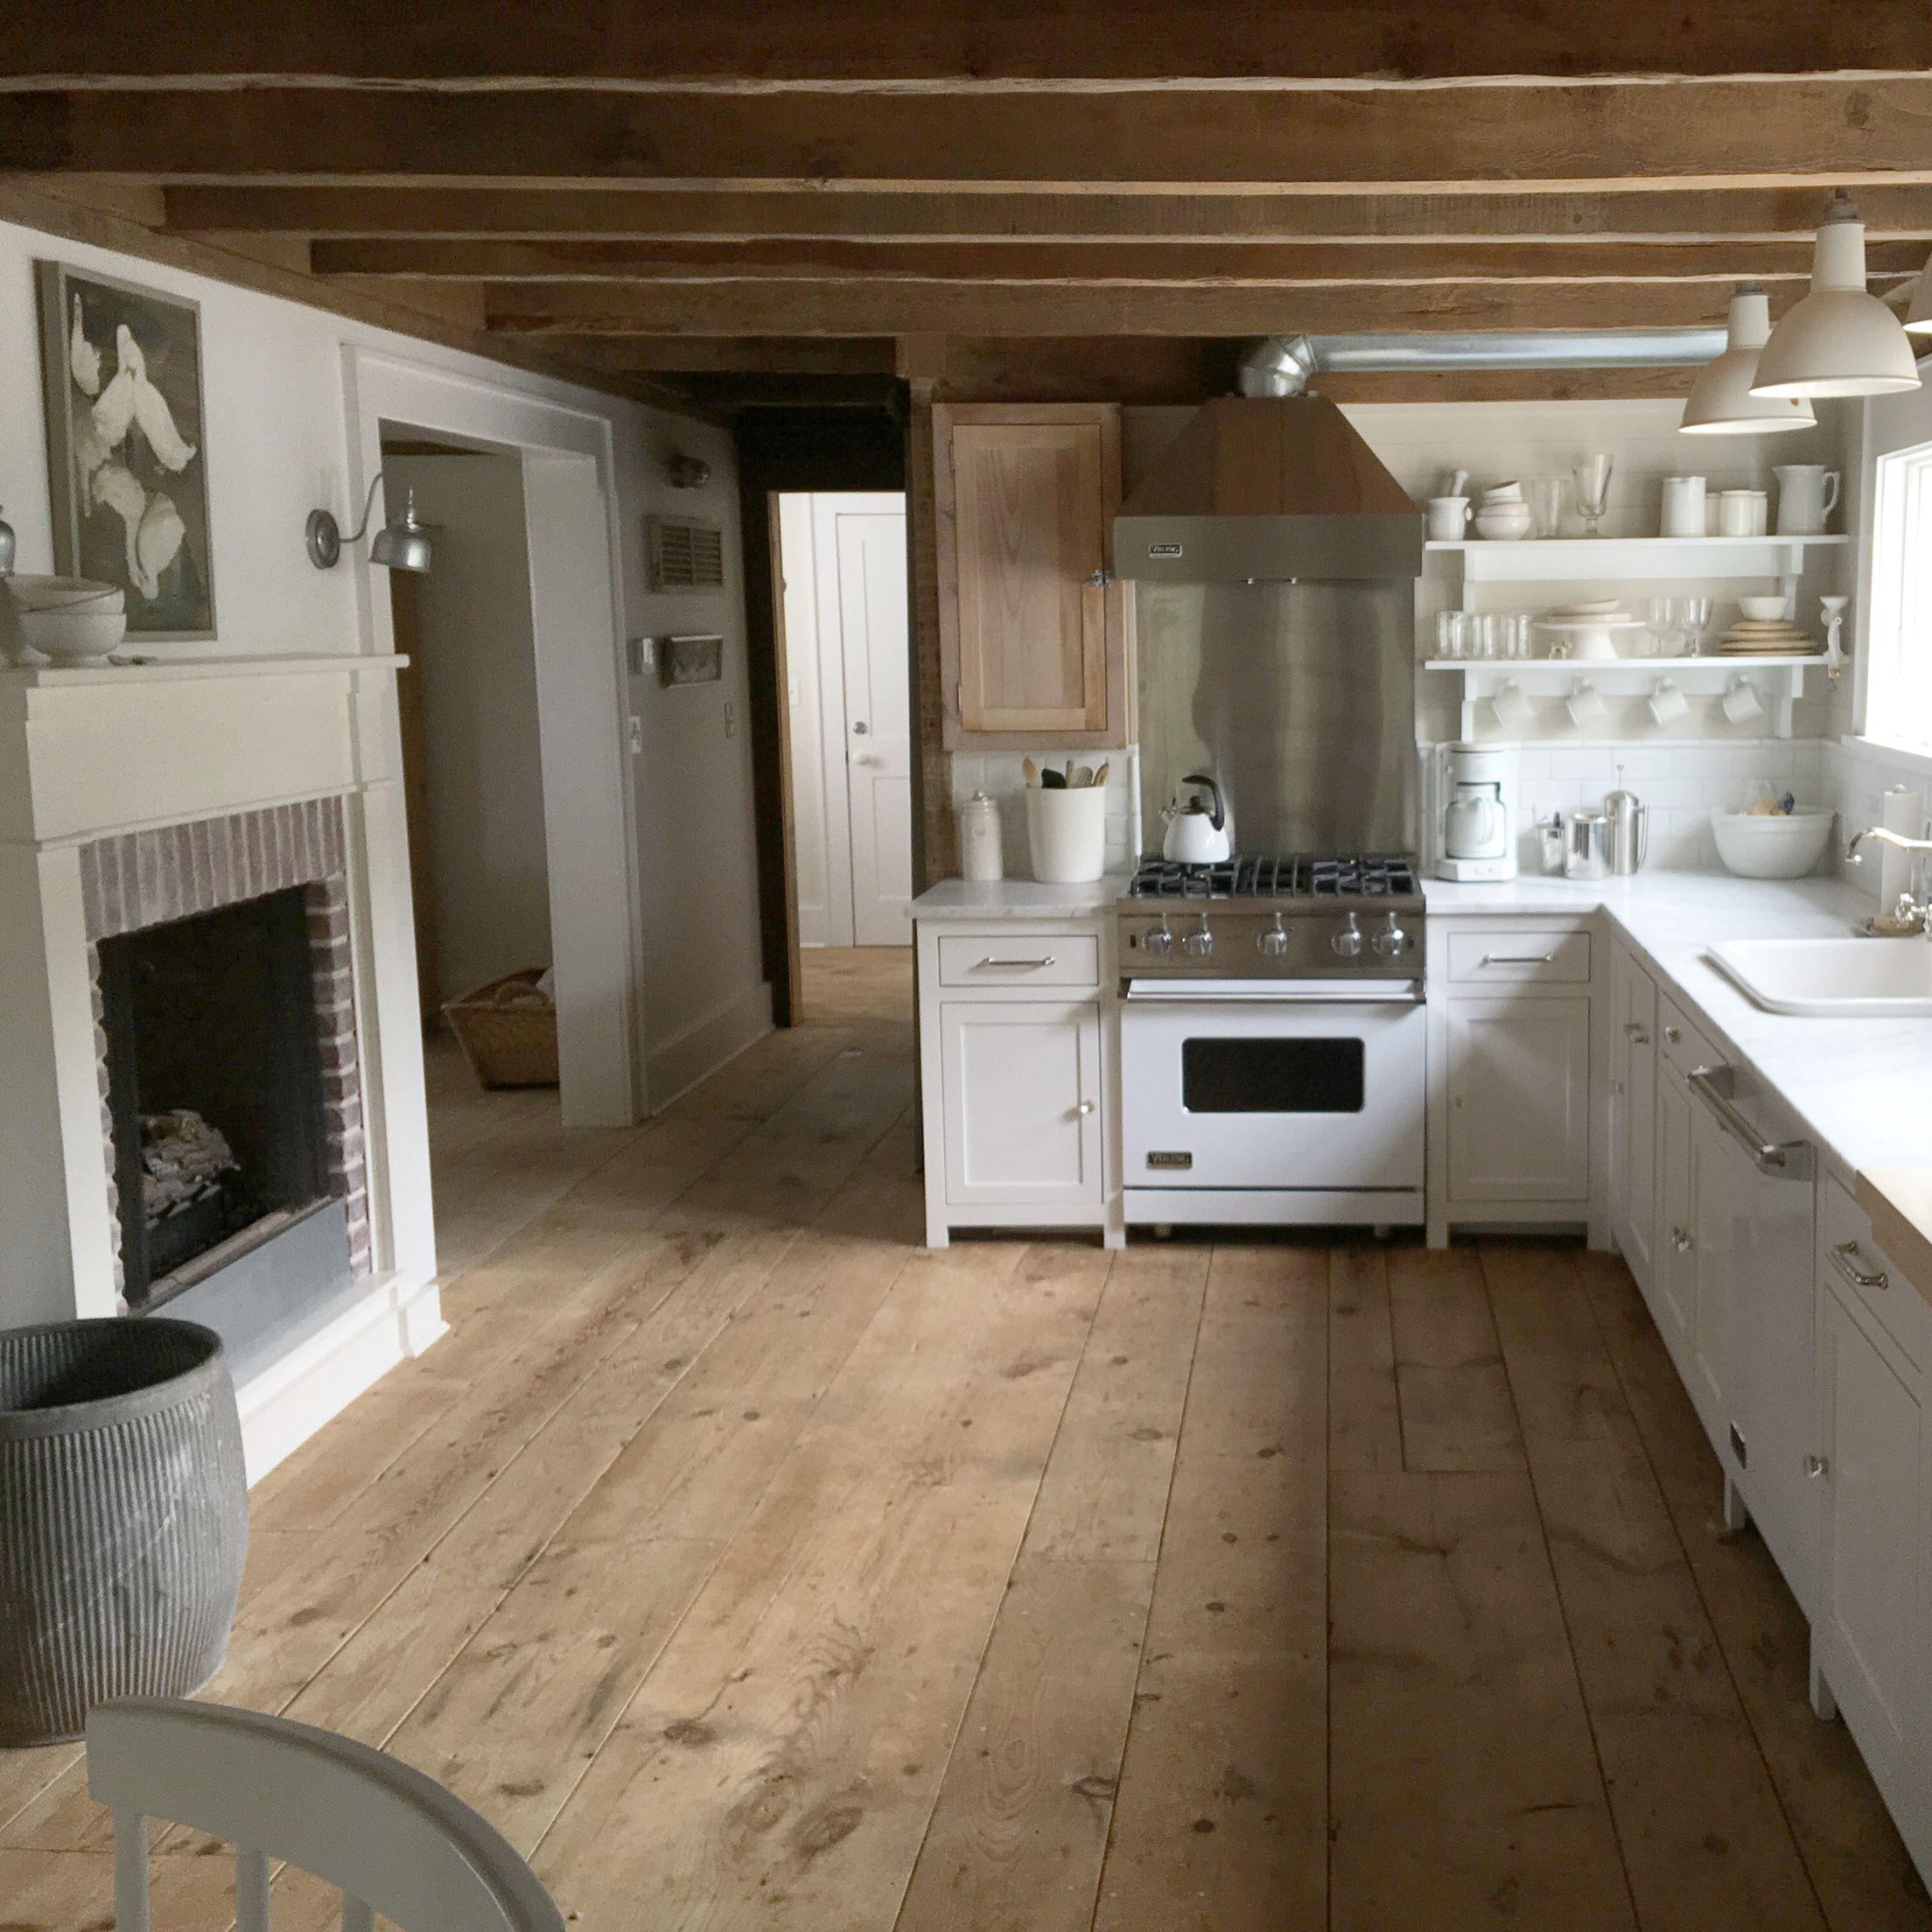 Cottage Kitchen Flooring Continued: Love This Kitchen. The Beams, Wood Floors, White Cabinets, Spacious Design, And Fireplace. The